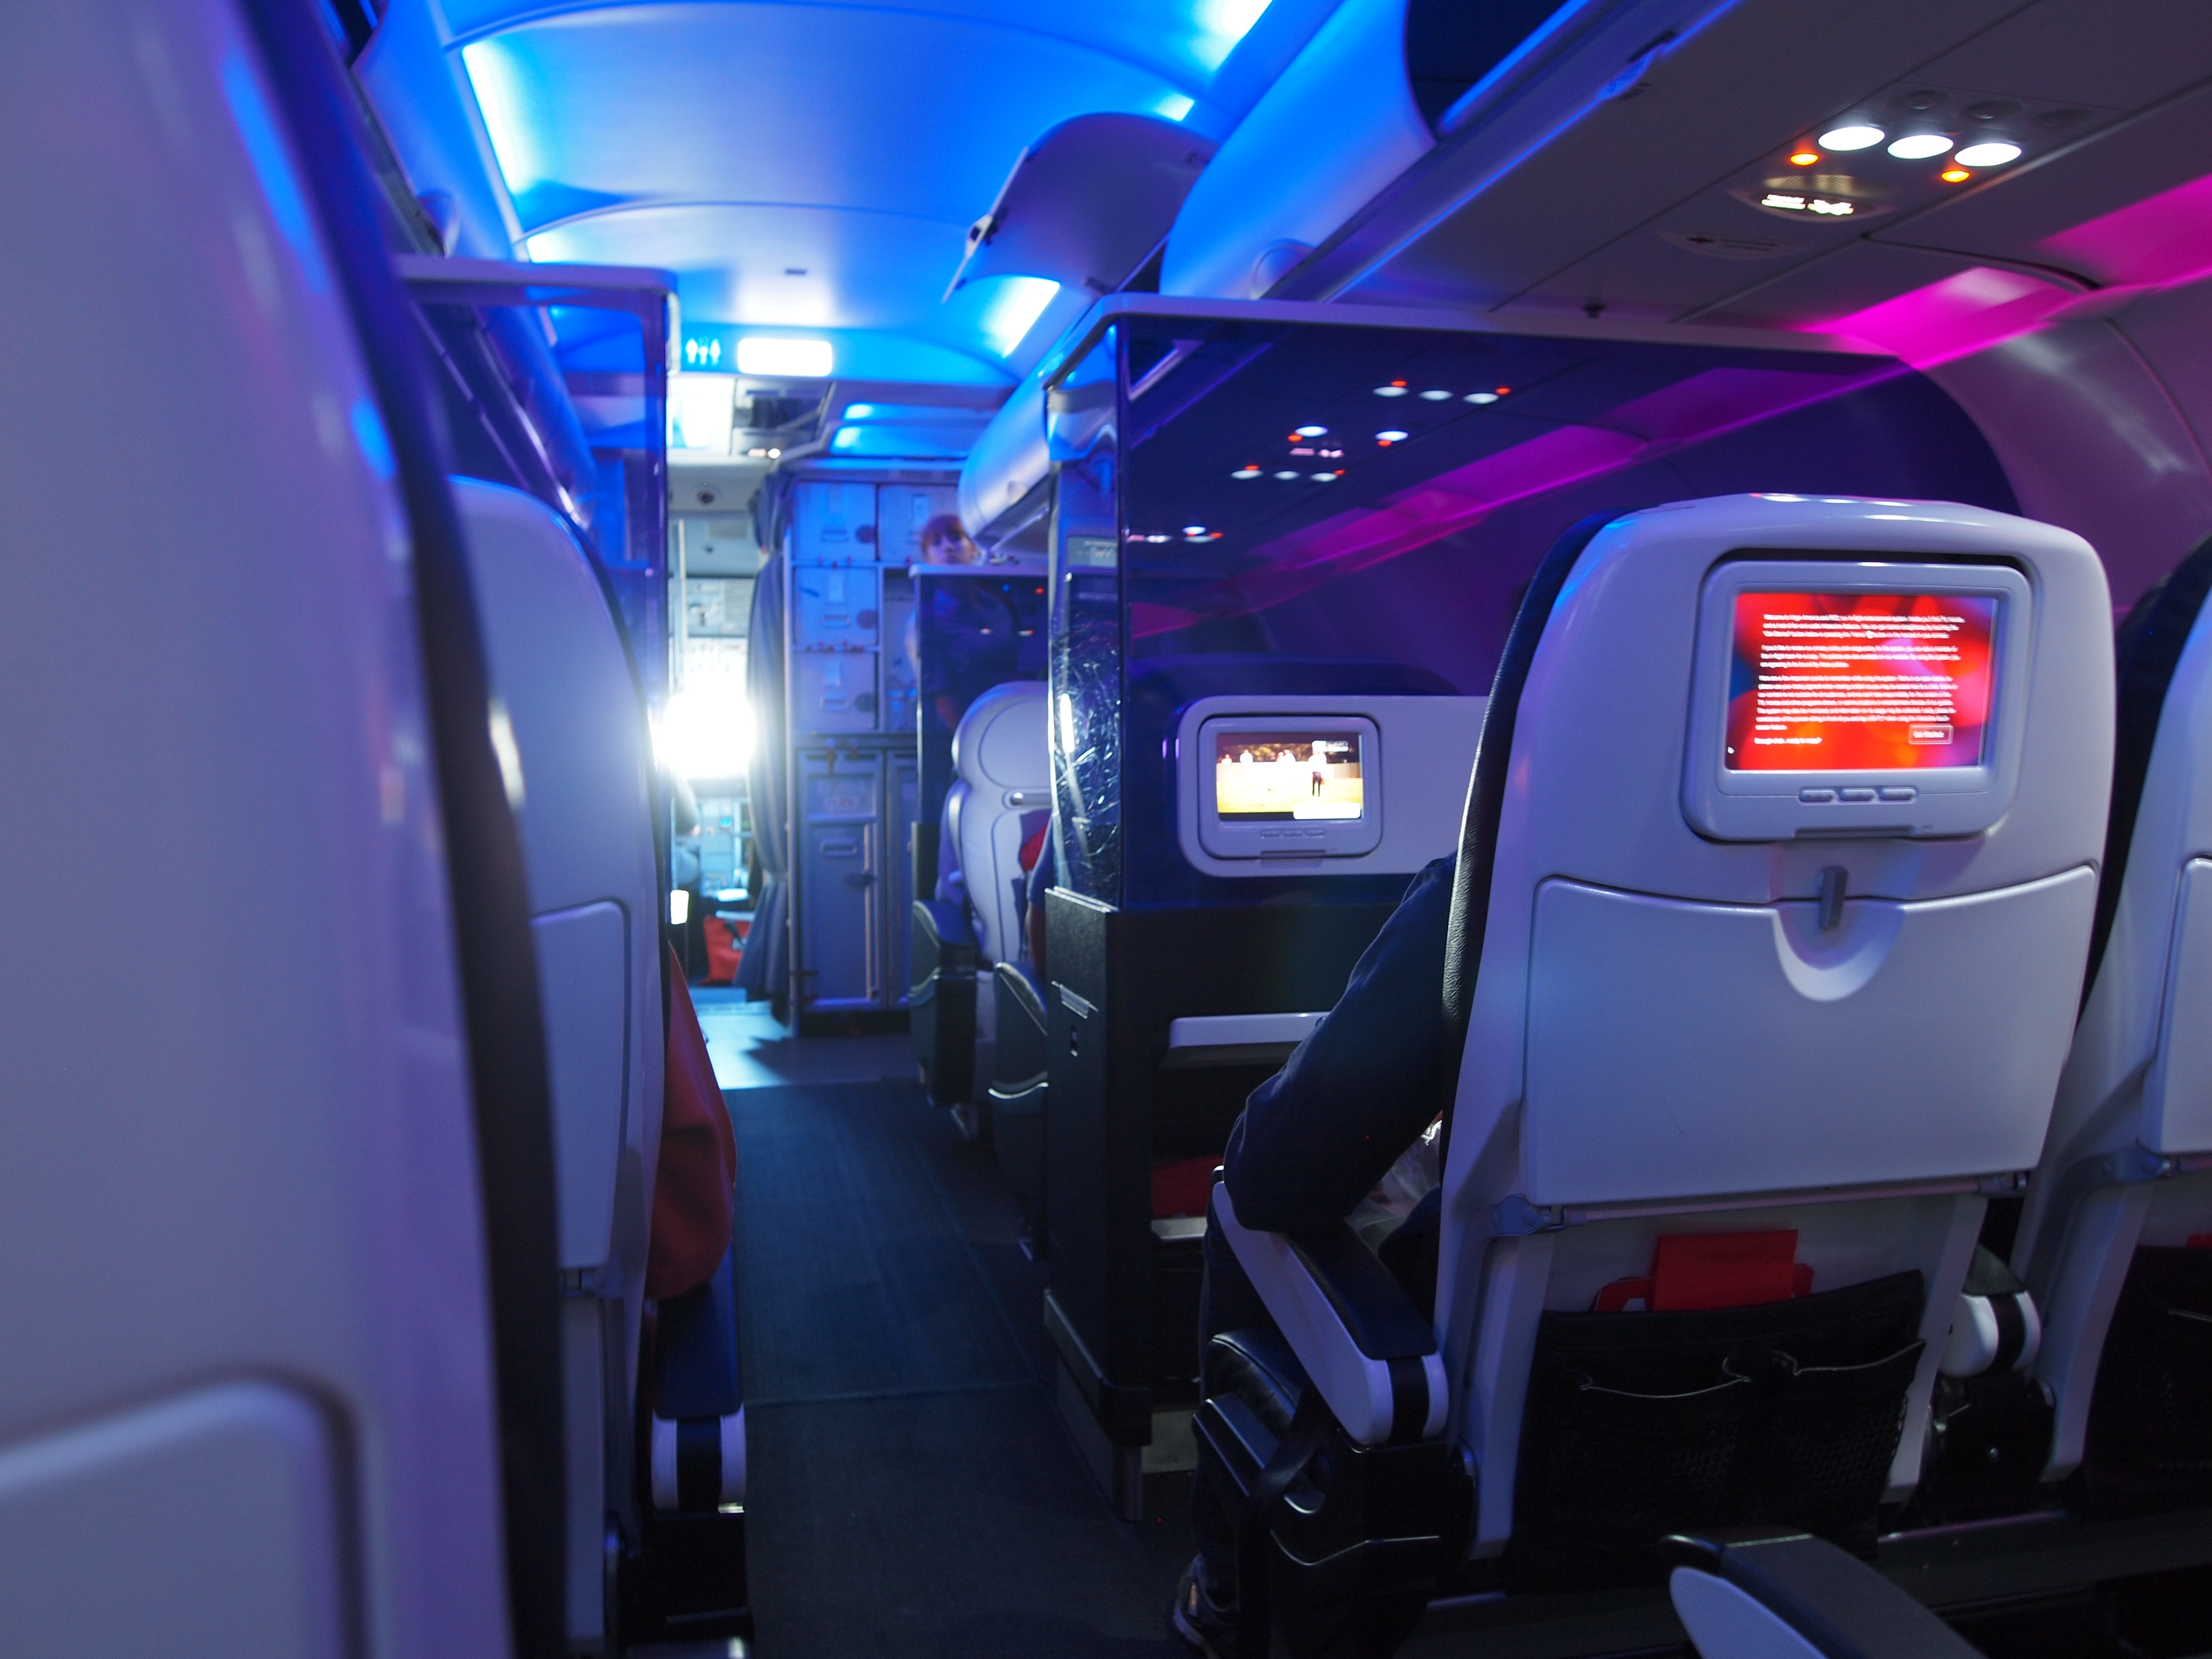 The First Class Cabin Ahead Of The Economy Cabin. «